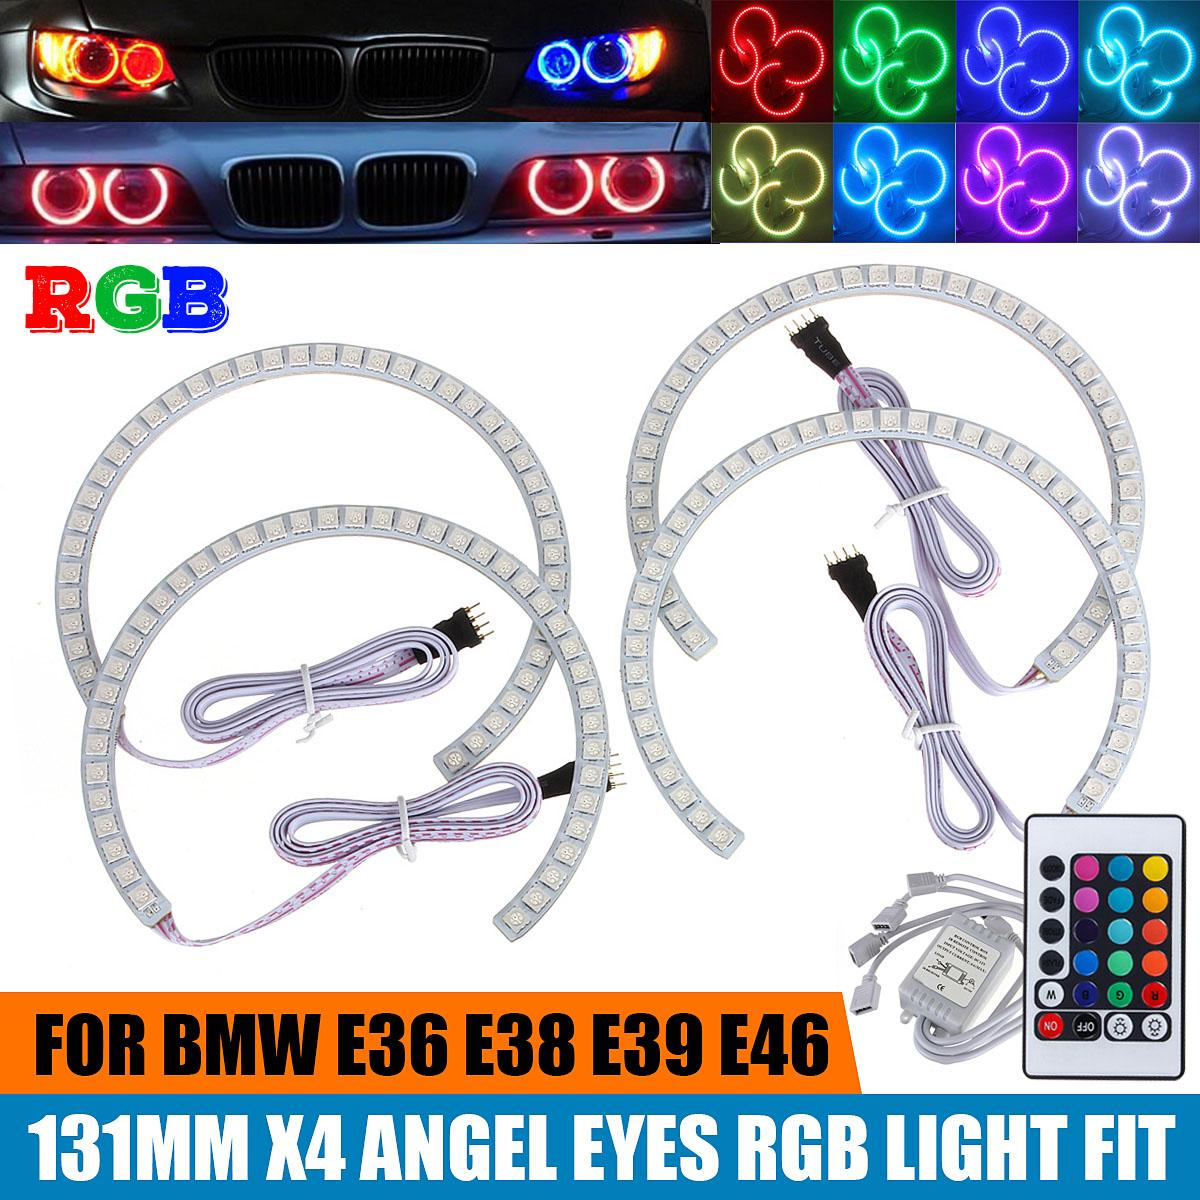 4PCS Latest Multi-Color 168 RGB 5050 SMD LED Angel Eyes Halo Ring For BMW E36 E38 E39 E46 M3 16 Colors Available To Change